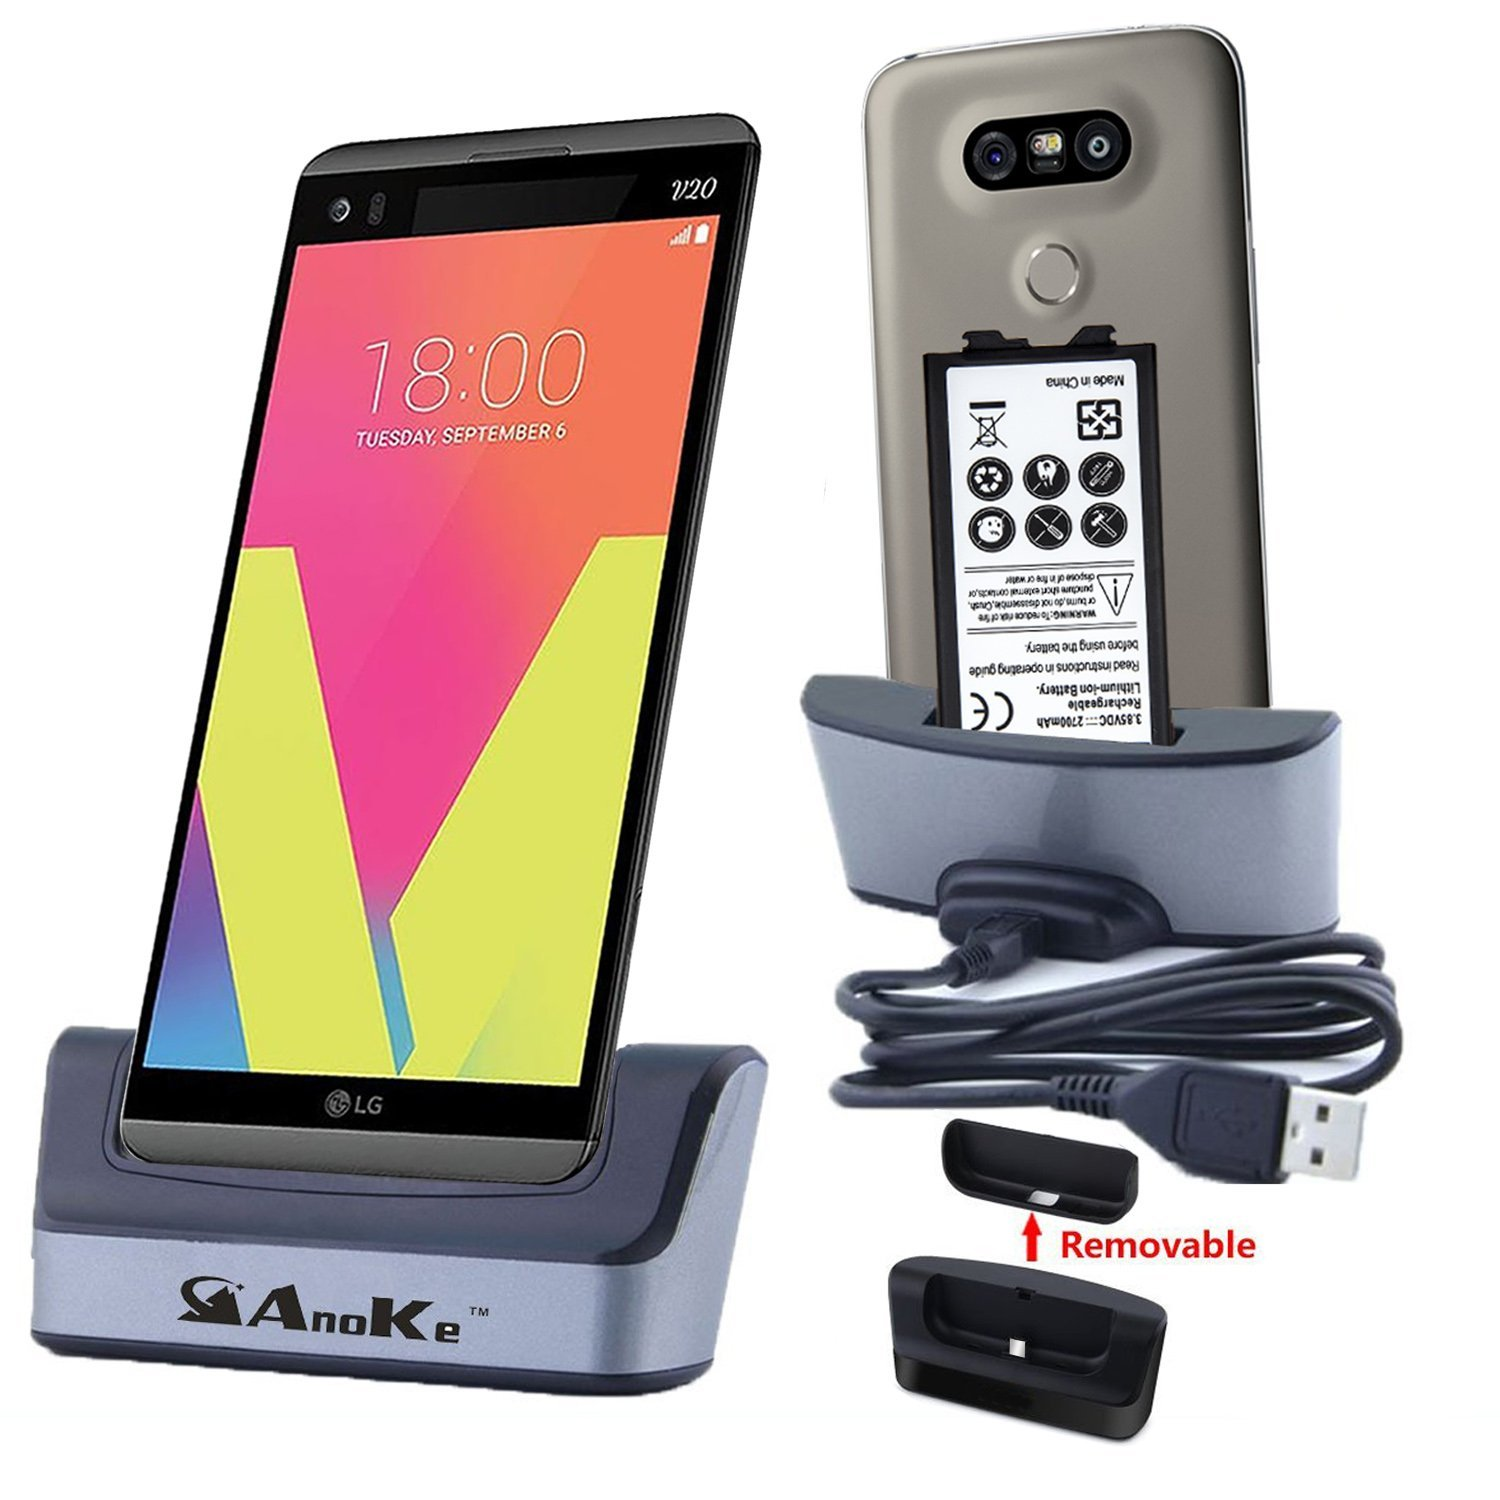 LG V20 Charger, AnoKe [Support Spare Battery Charging] Replacement Desktop Charging Docking Station Cradle Stand Holder With USB Cable for LG V20 Cell Phone Charger Dock